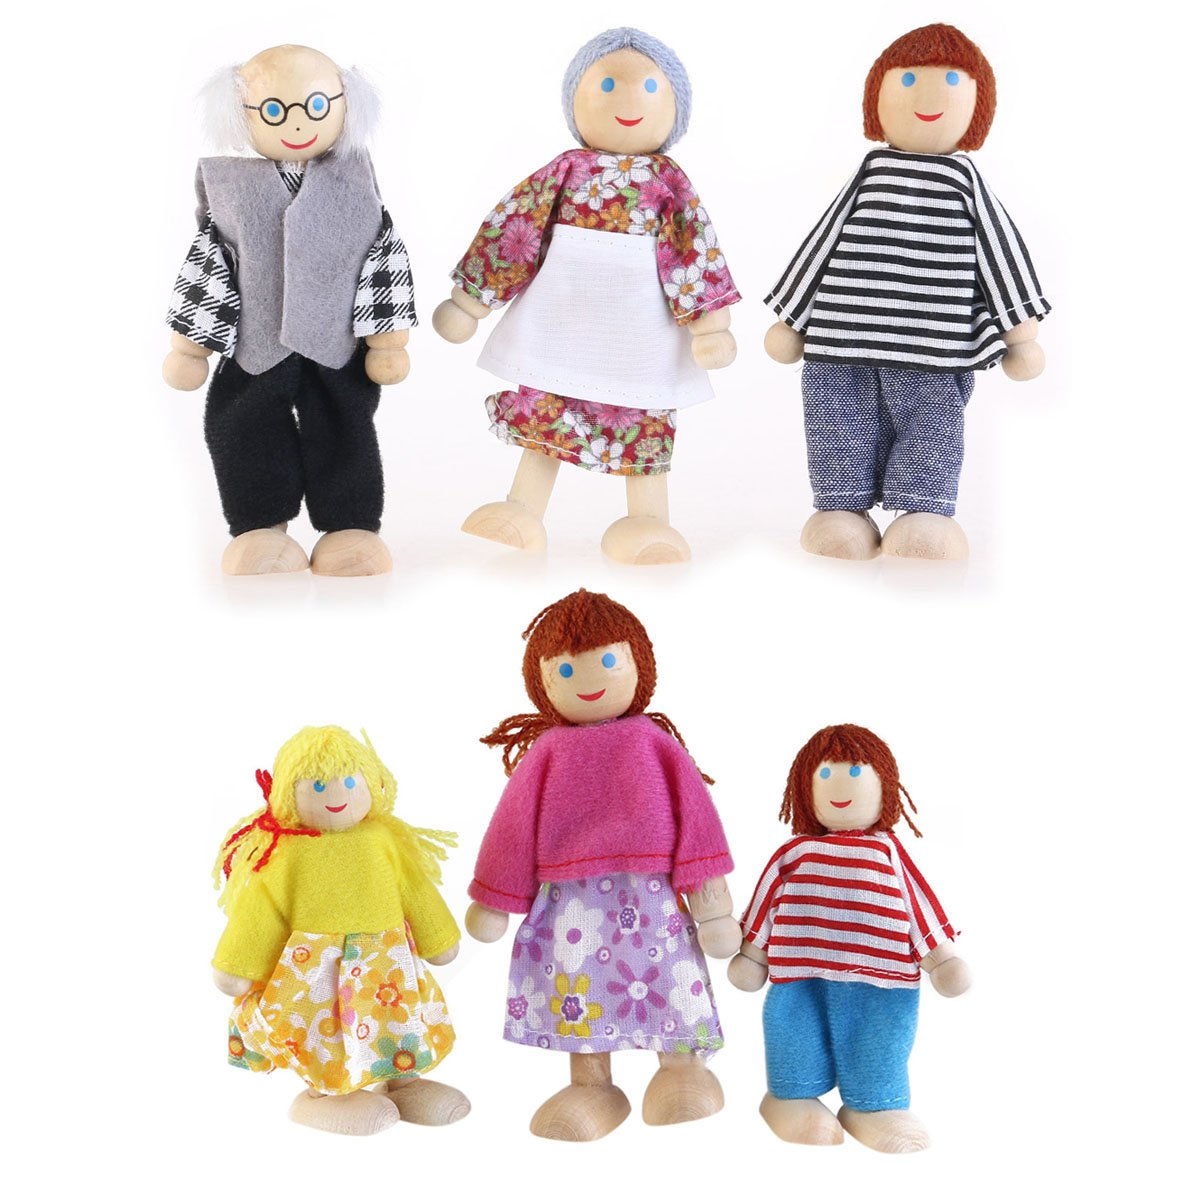 Tinksky Happy Doll Family Wooden Joint Puppet Maumet Including Grandparents for Kids Fun Role Playing Pack of 6 Birthday Gift for your lovely son or daughter